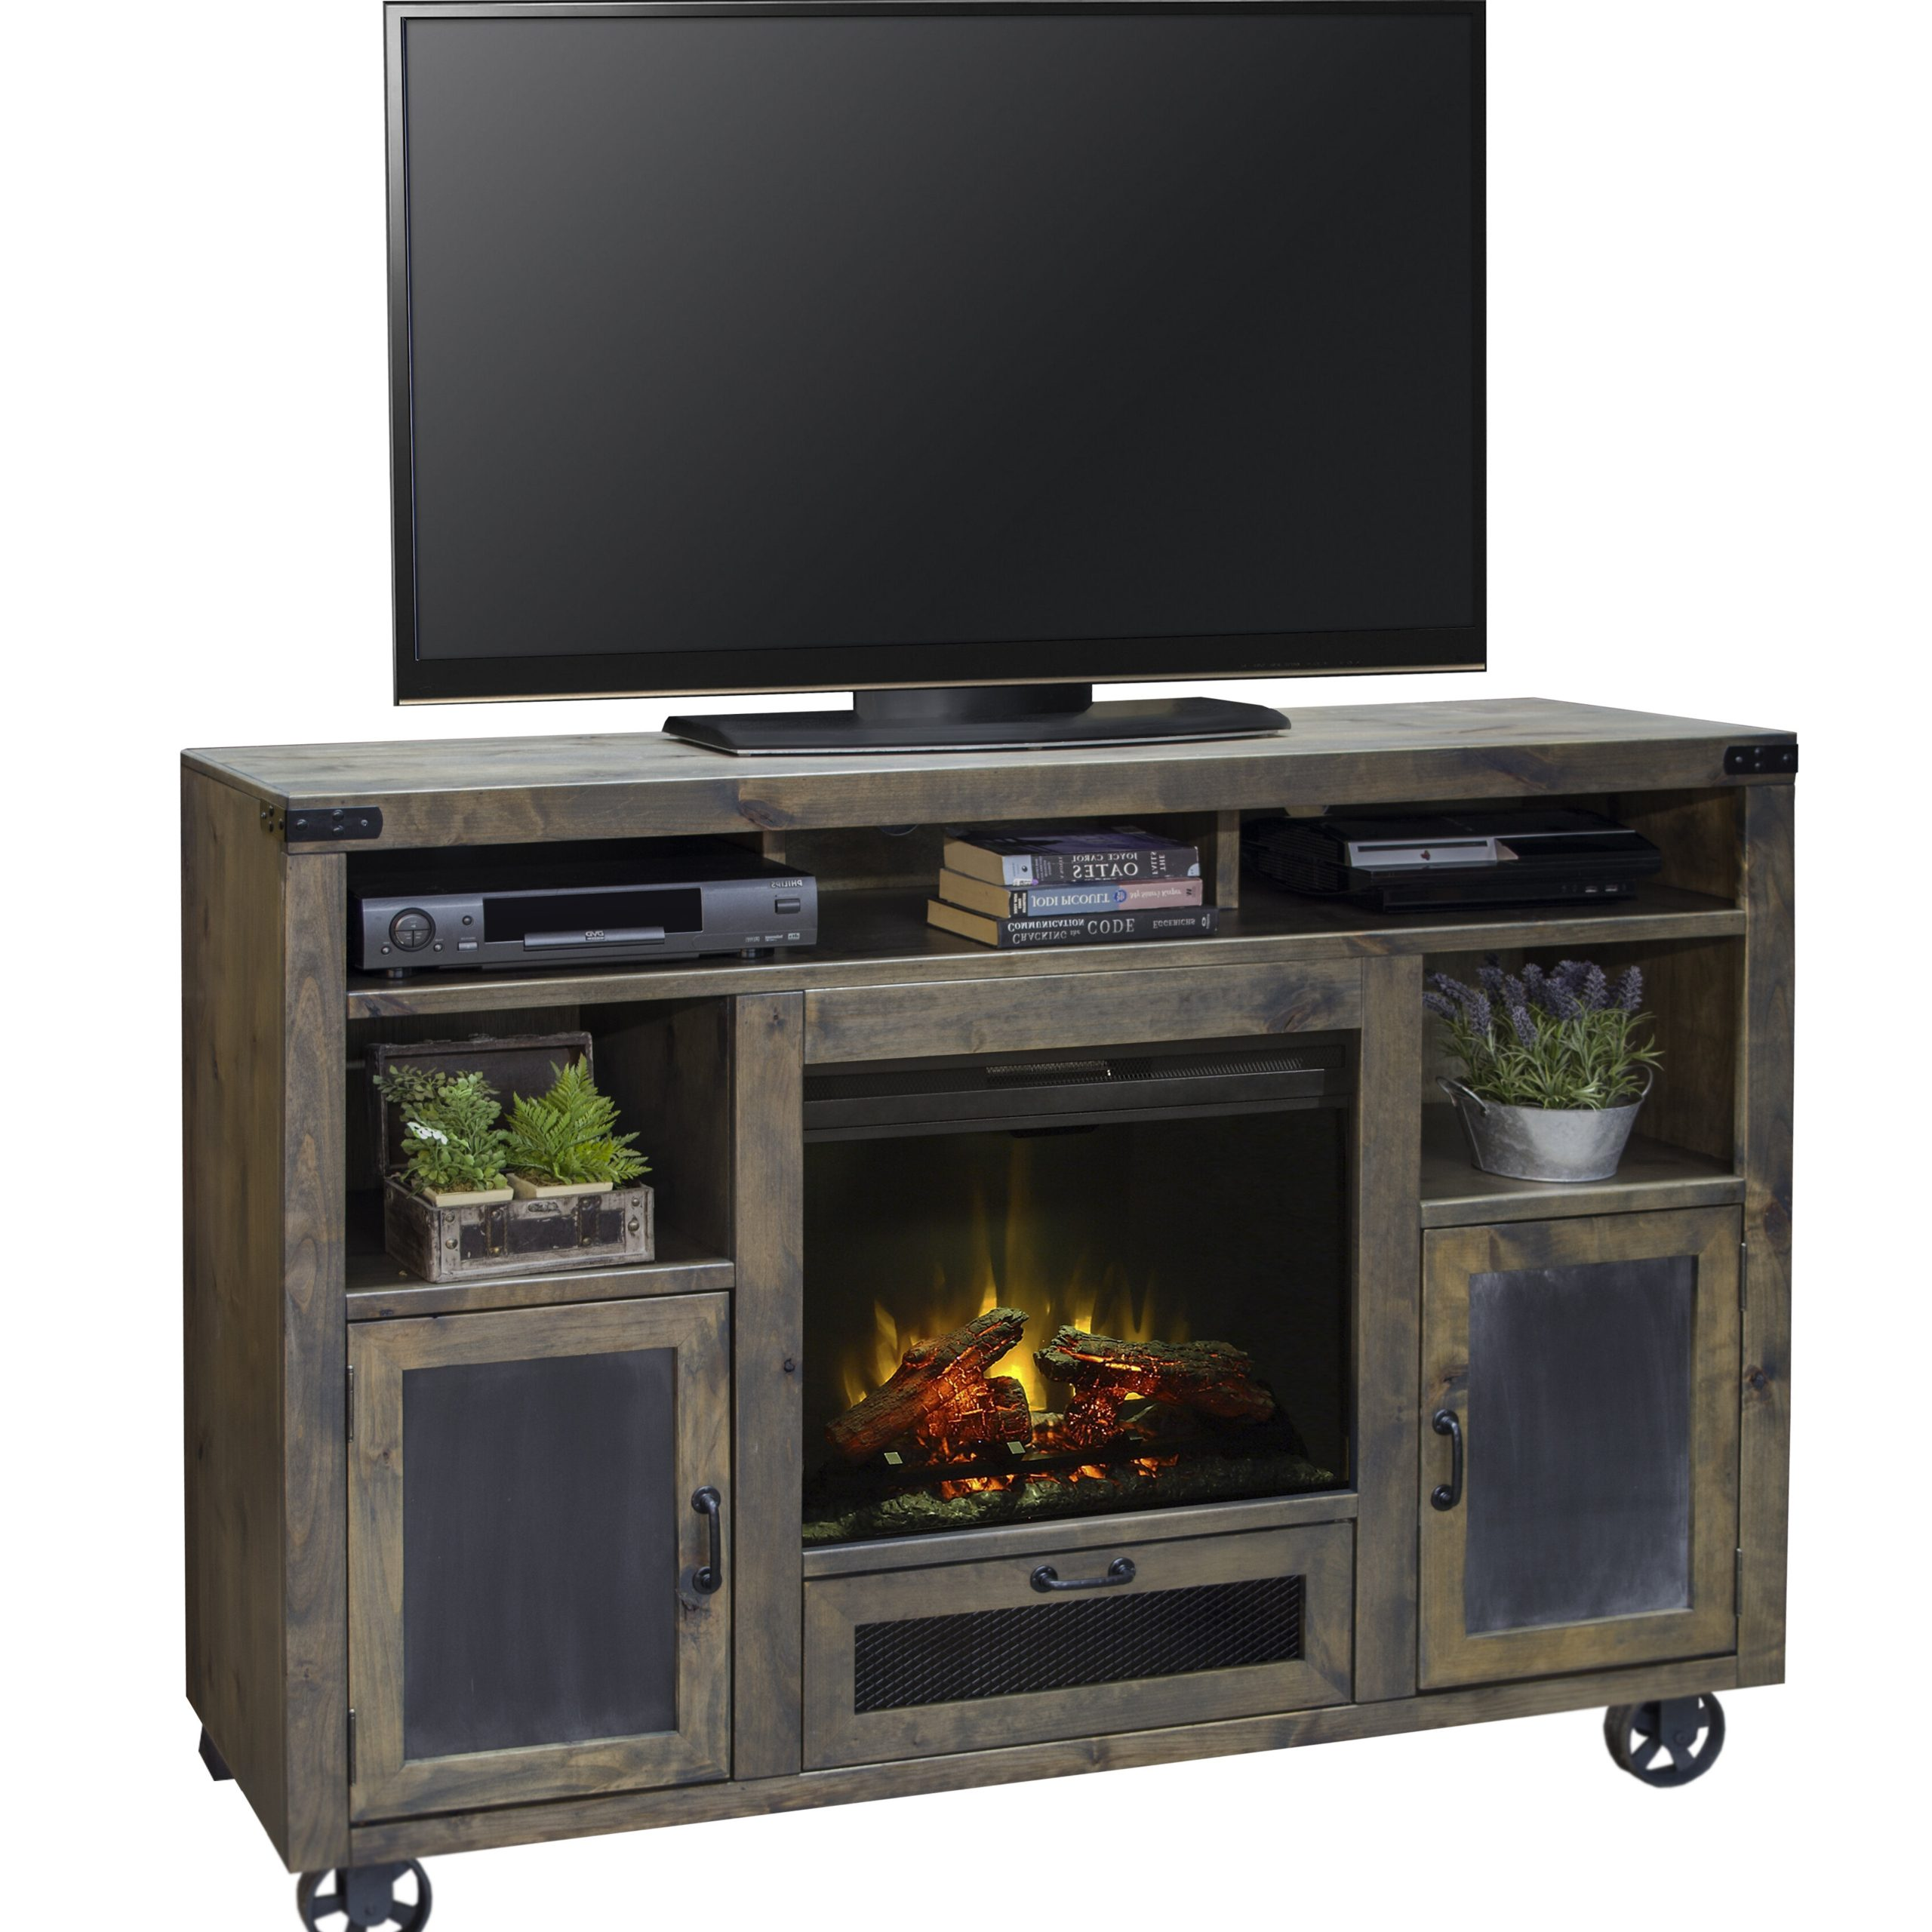 """Chicago Tv Stands For Tvs Up To 70"""" With Fireplace Included With Regard To Recent Fireplace Tv Stand 70 Inch – Ideas On Foter (View 3 of 25)"""